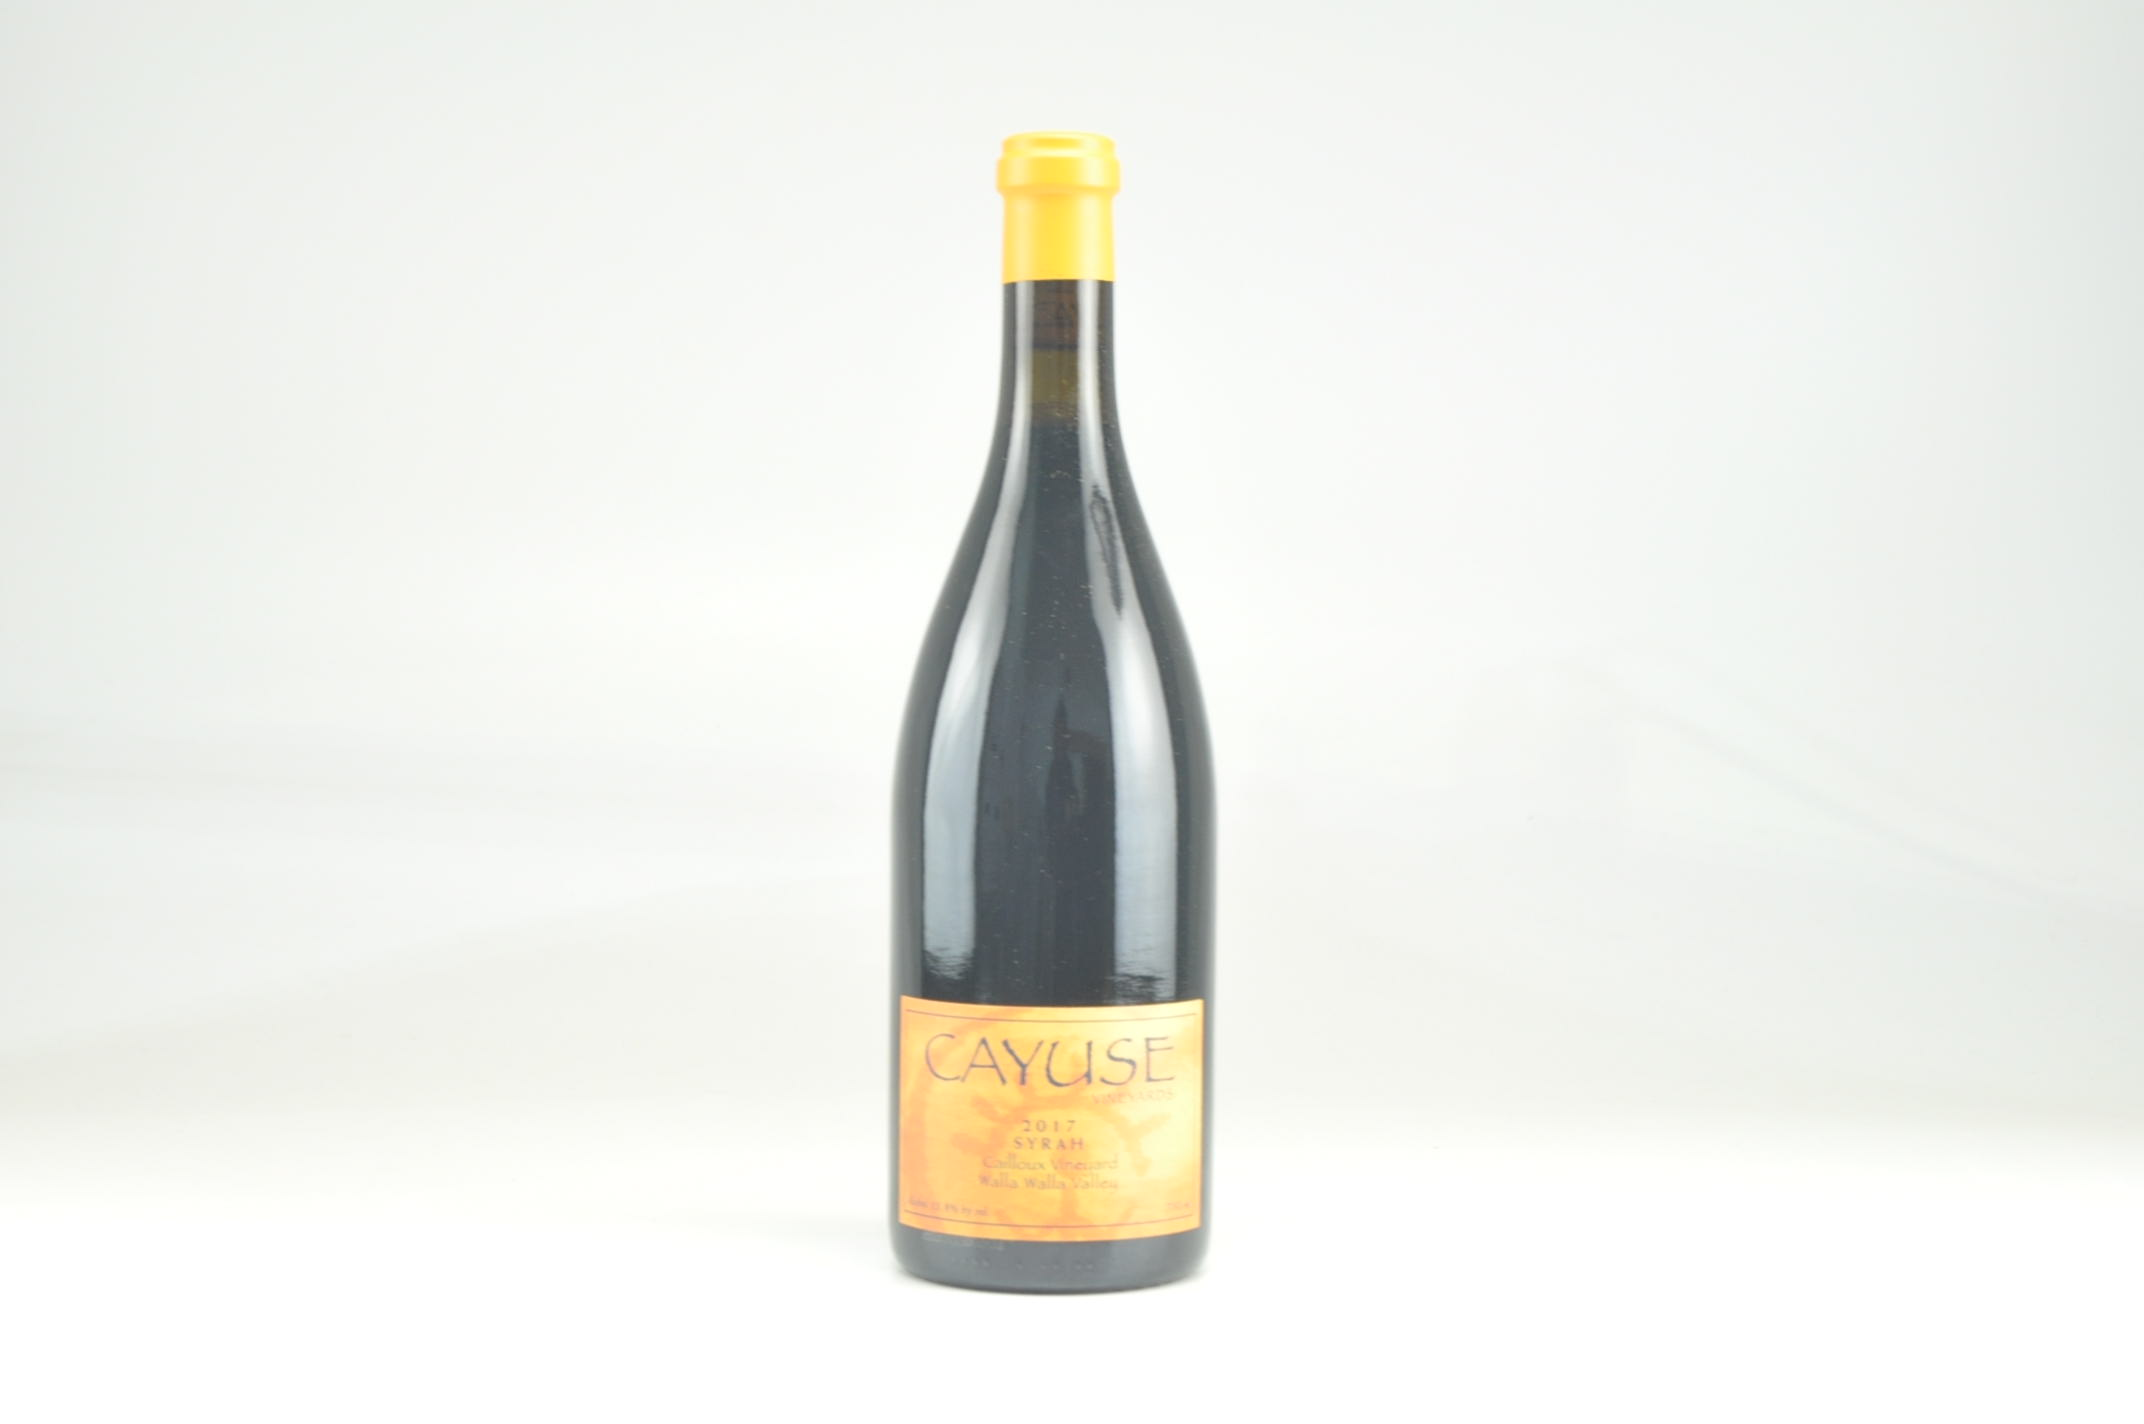 2007 Cayuse Syrah Cailloux Vineyard, Walla Walla Valley RP--98